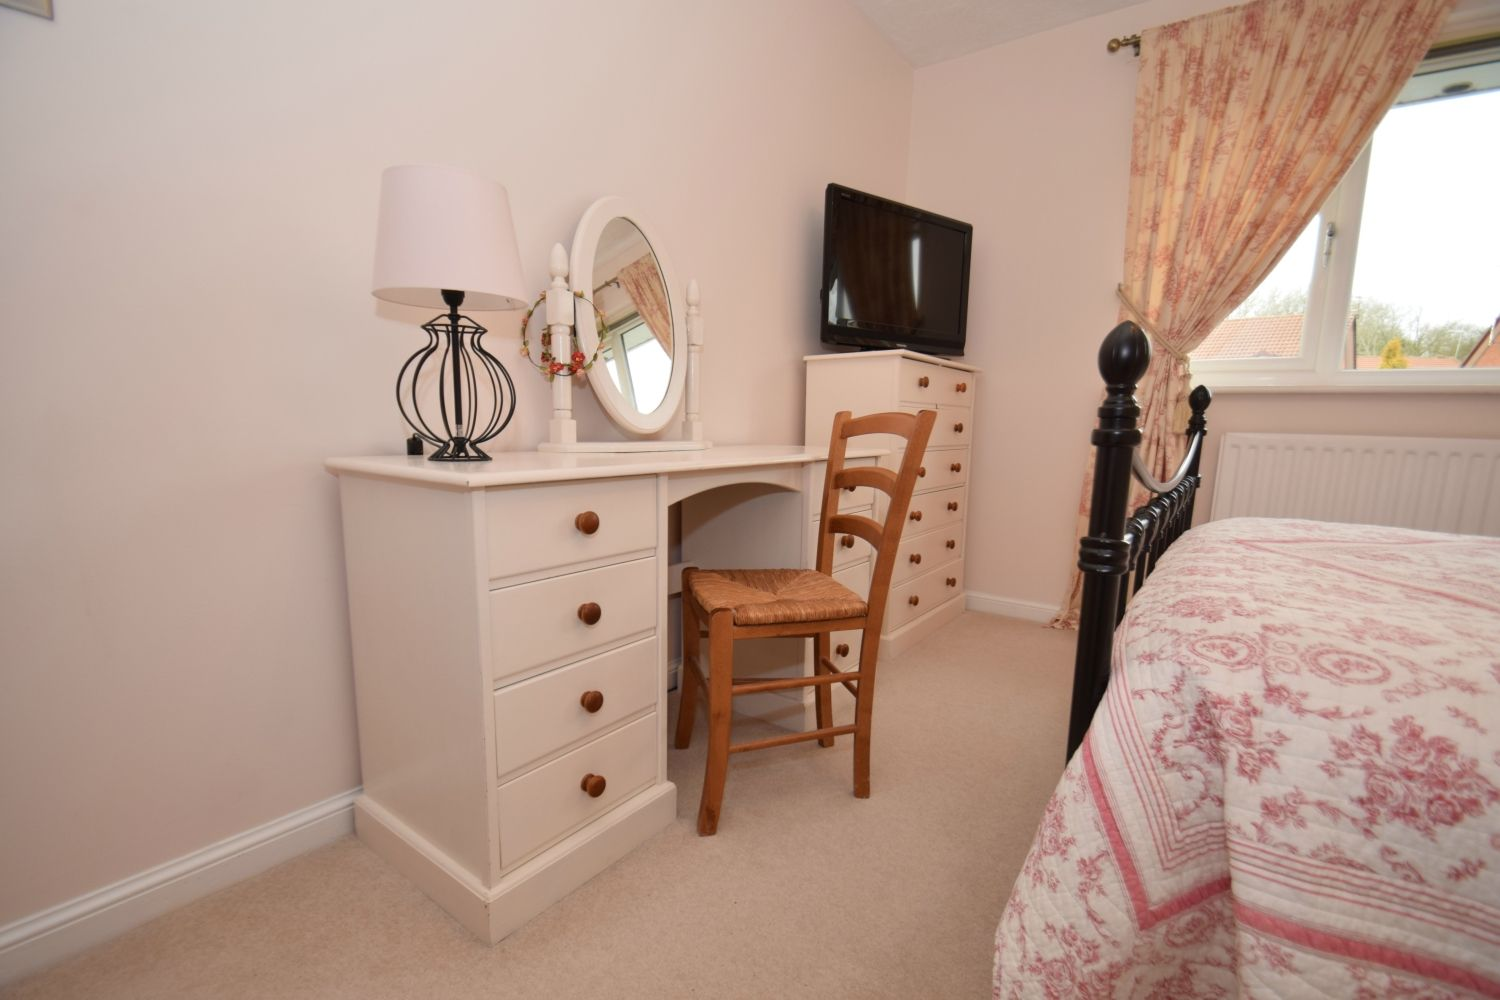 3 bed detached for sale in Foxes Close, Blackwell, B60  - Property Image 12